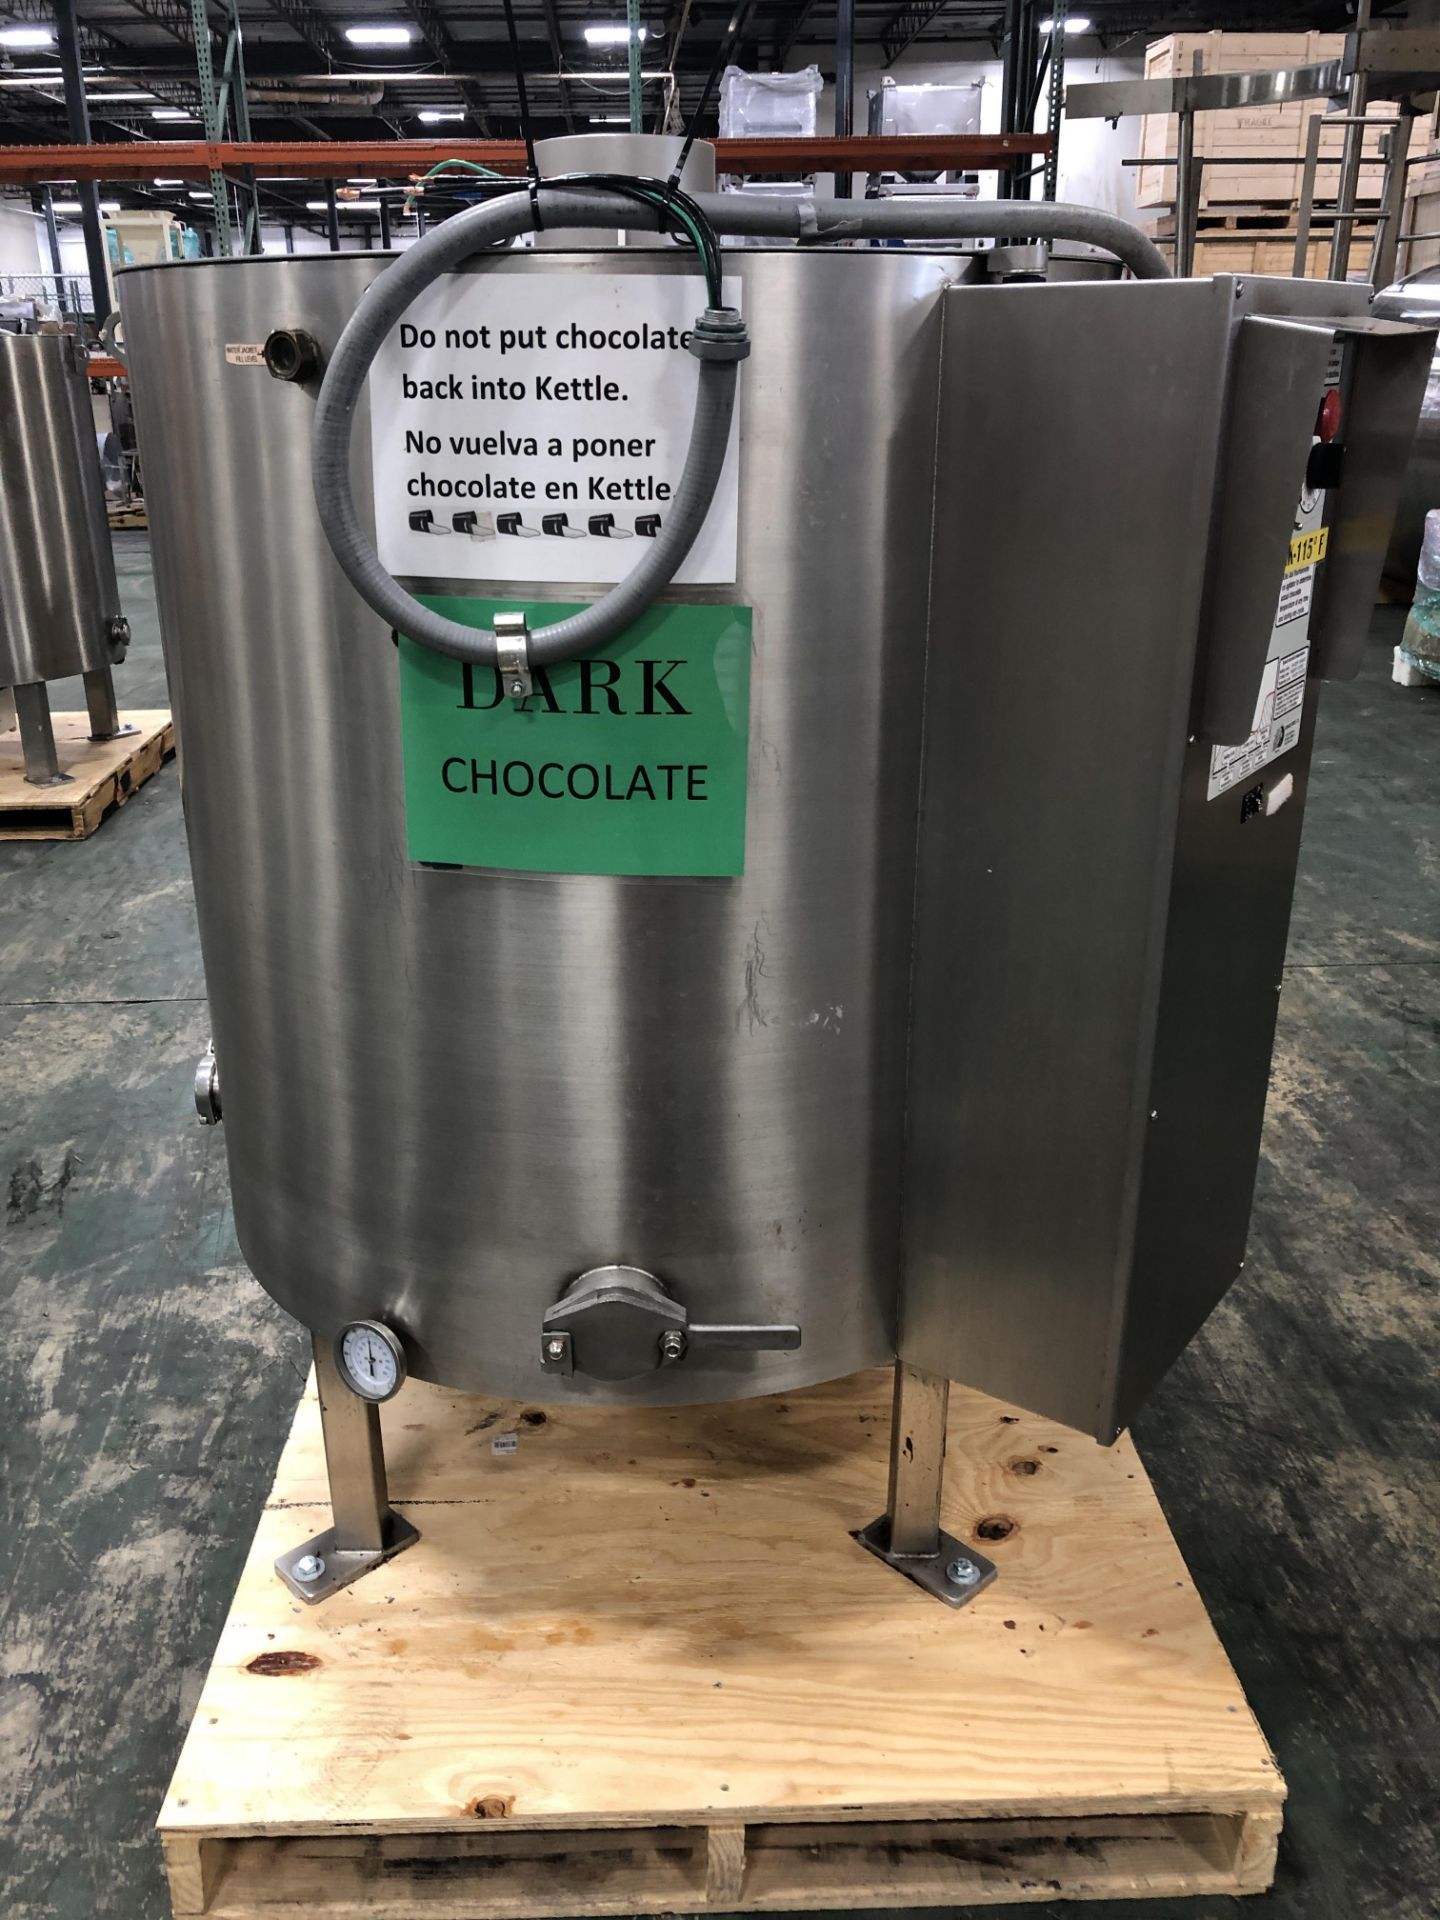 Lot 44 - Savage Stainless Steel 1250-lb Chocolate Melter, model 0974-40